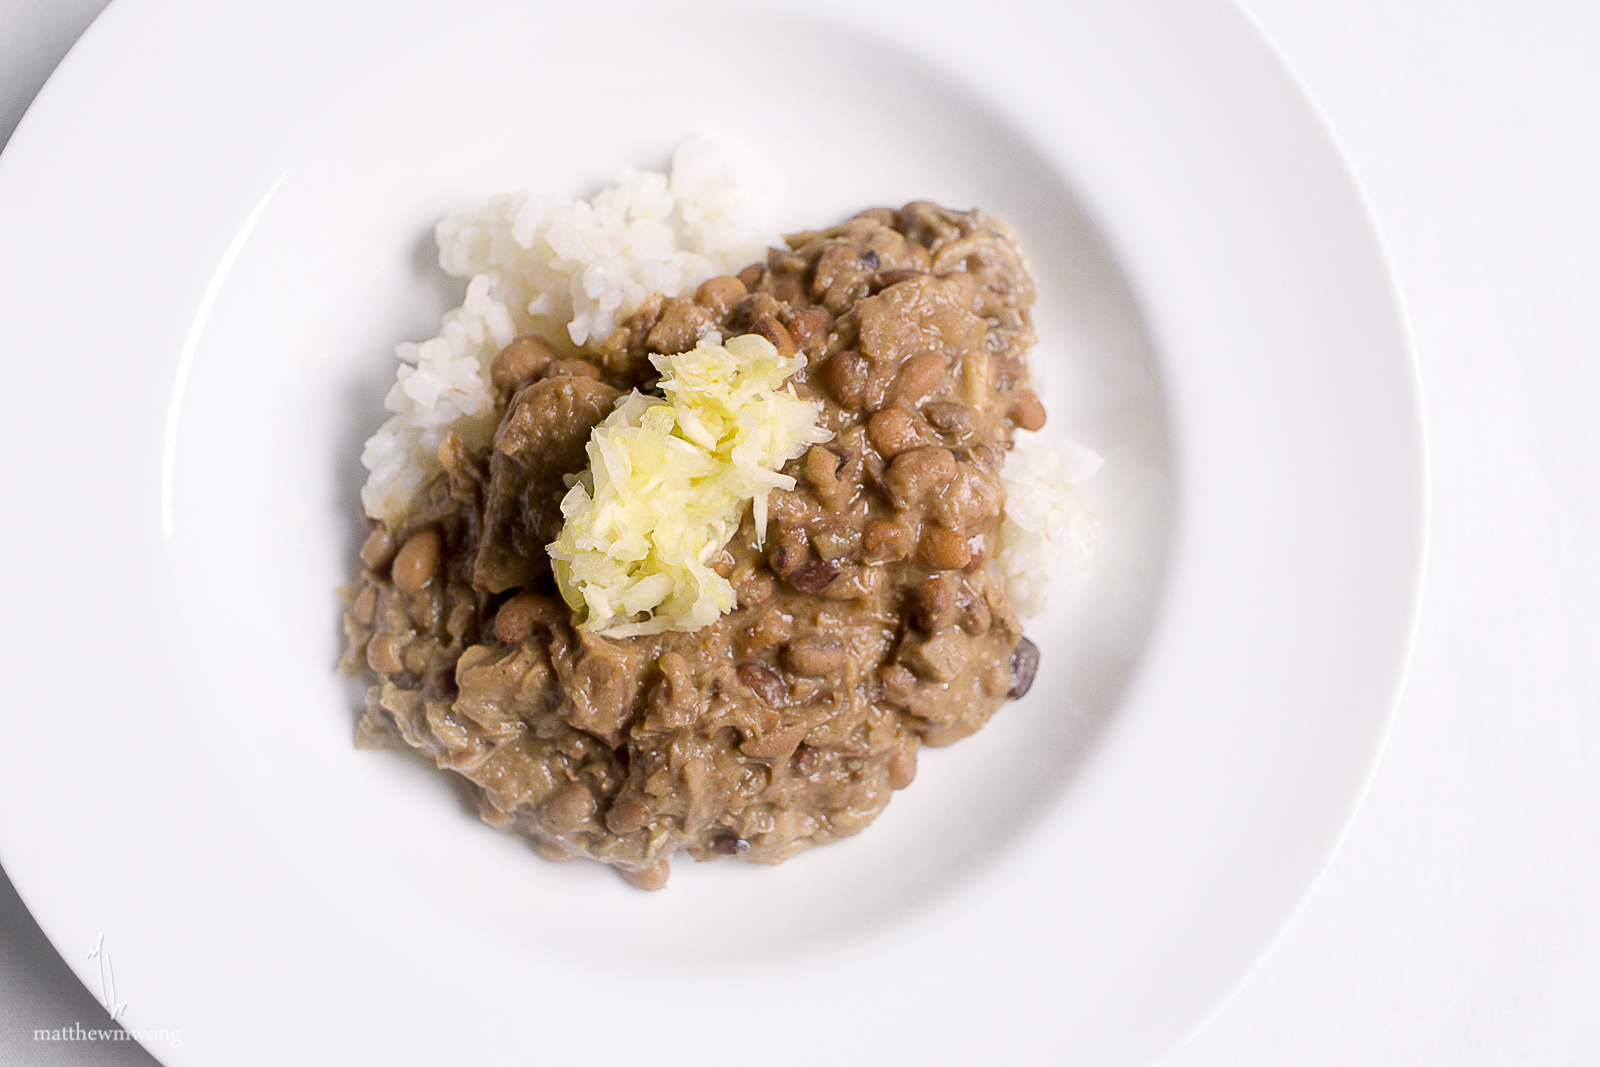 Hoppin' John, pig's head + Sea Island red pea stew, Anson Mills rice grits, house fermented cabbage